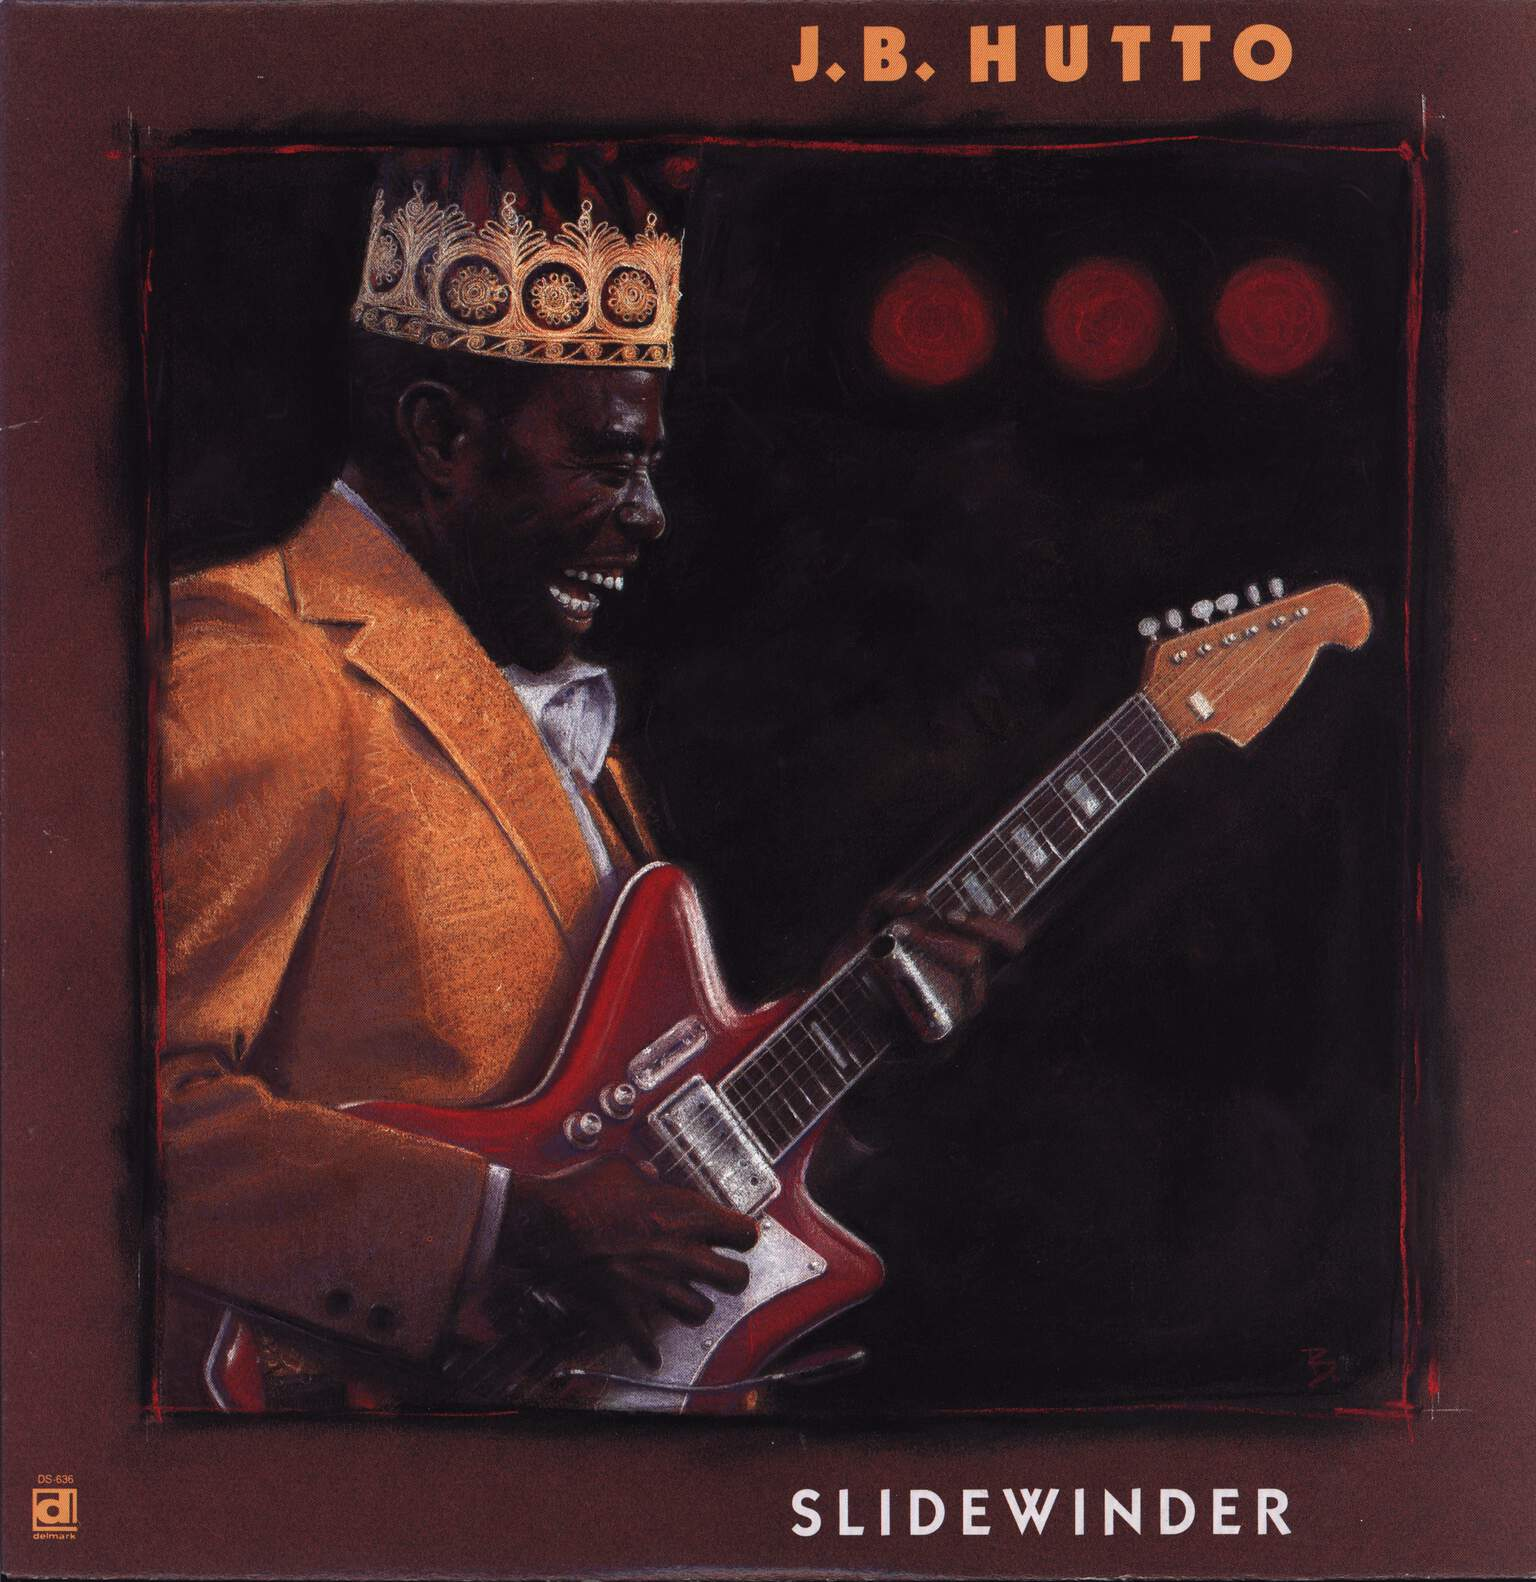 J.B. Hutto: Slidewinder, LP (Vinyl)